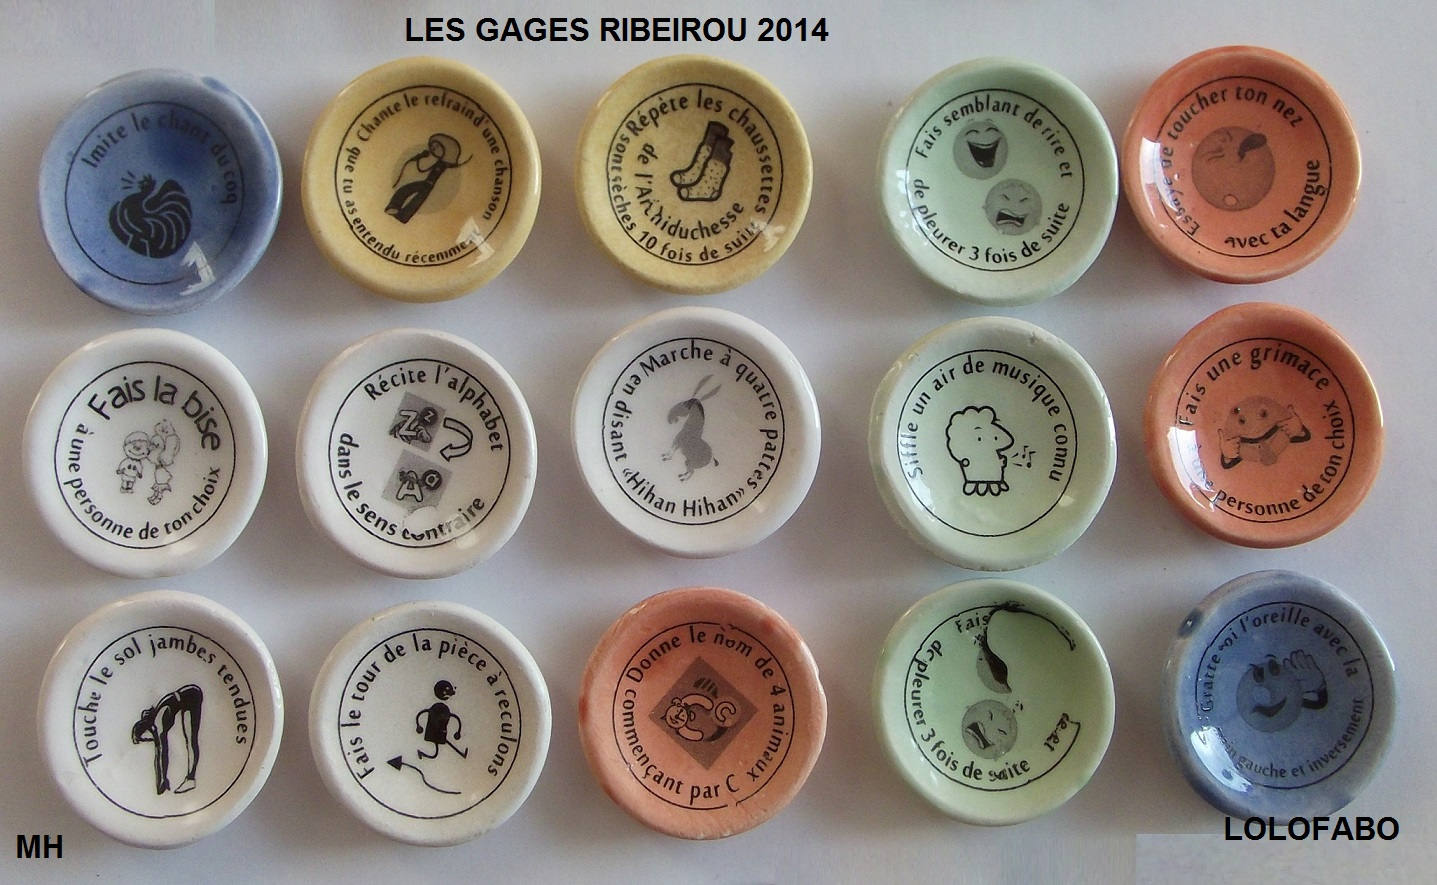 2014 les gages assiettes ribeirou mh